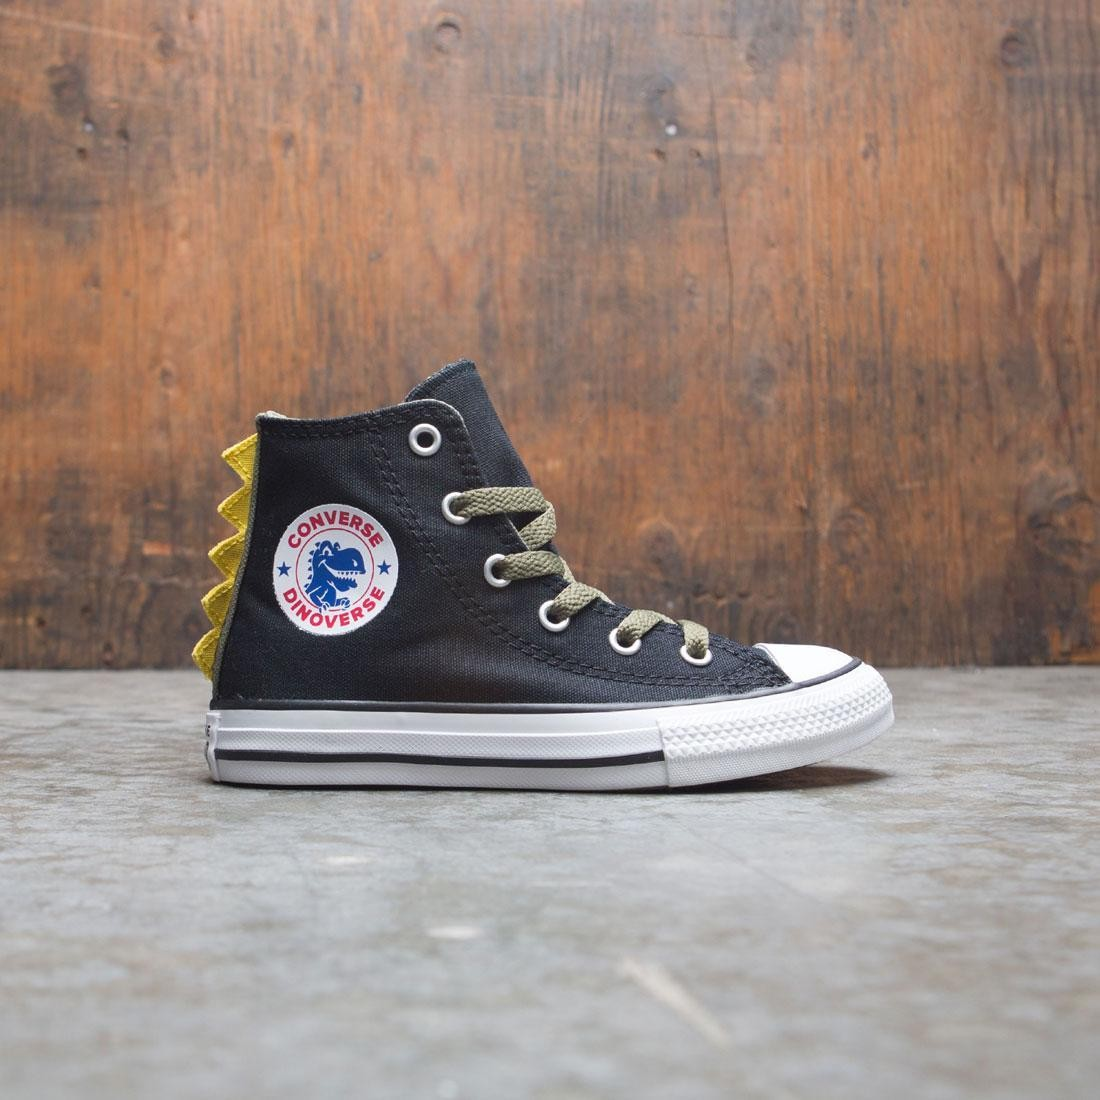 2e540664c0 Converse Little Kids Chuck Taylor All Star Dino Spikes Hi (black / field  surplus / white)